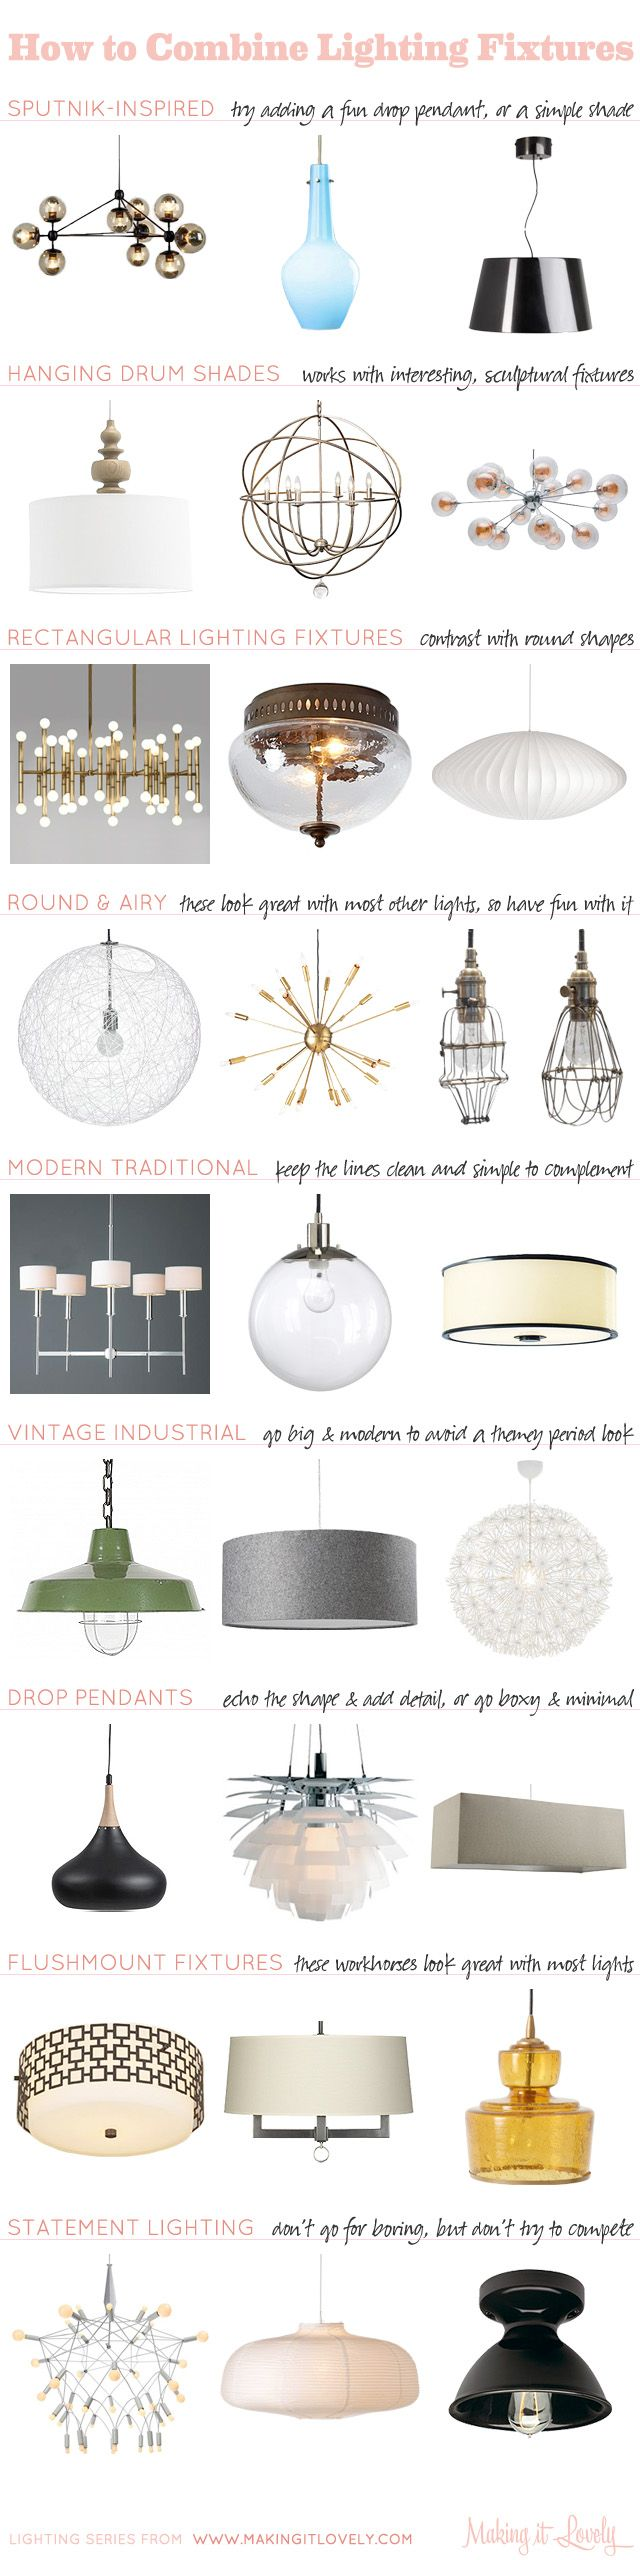 Guide to Combining Light Fixtures